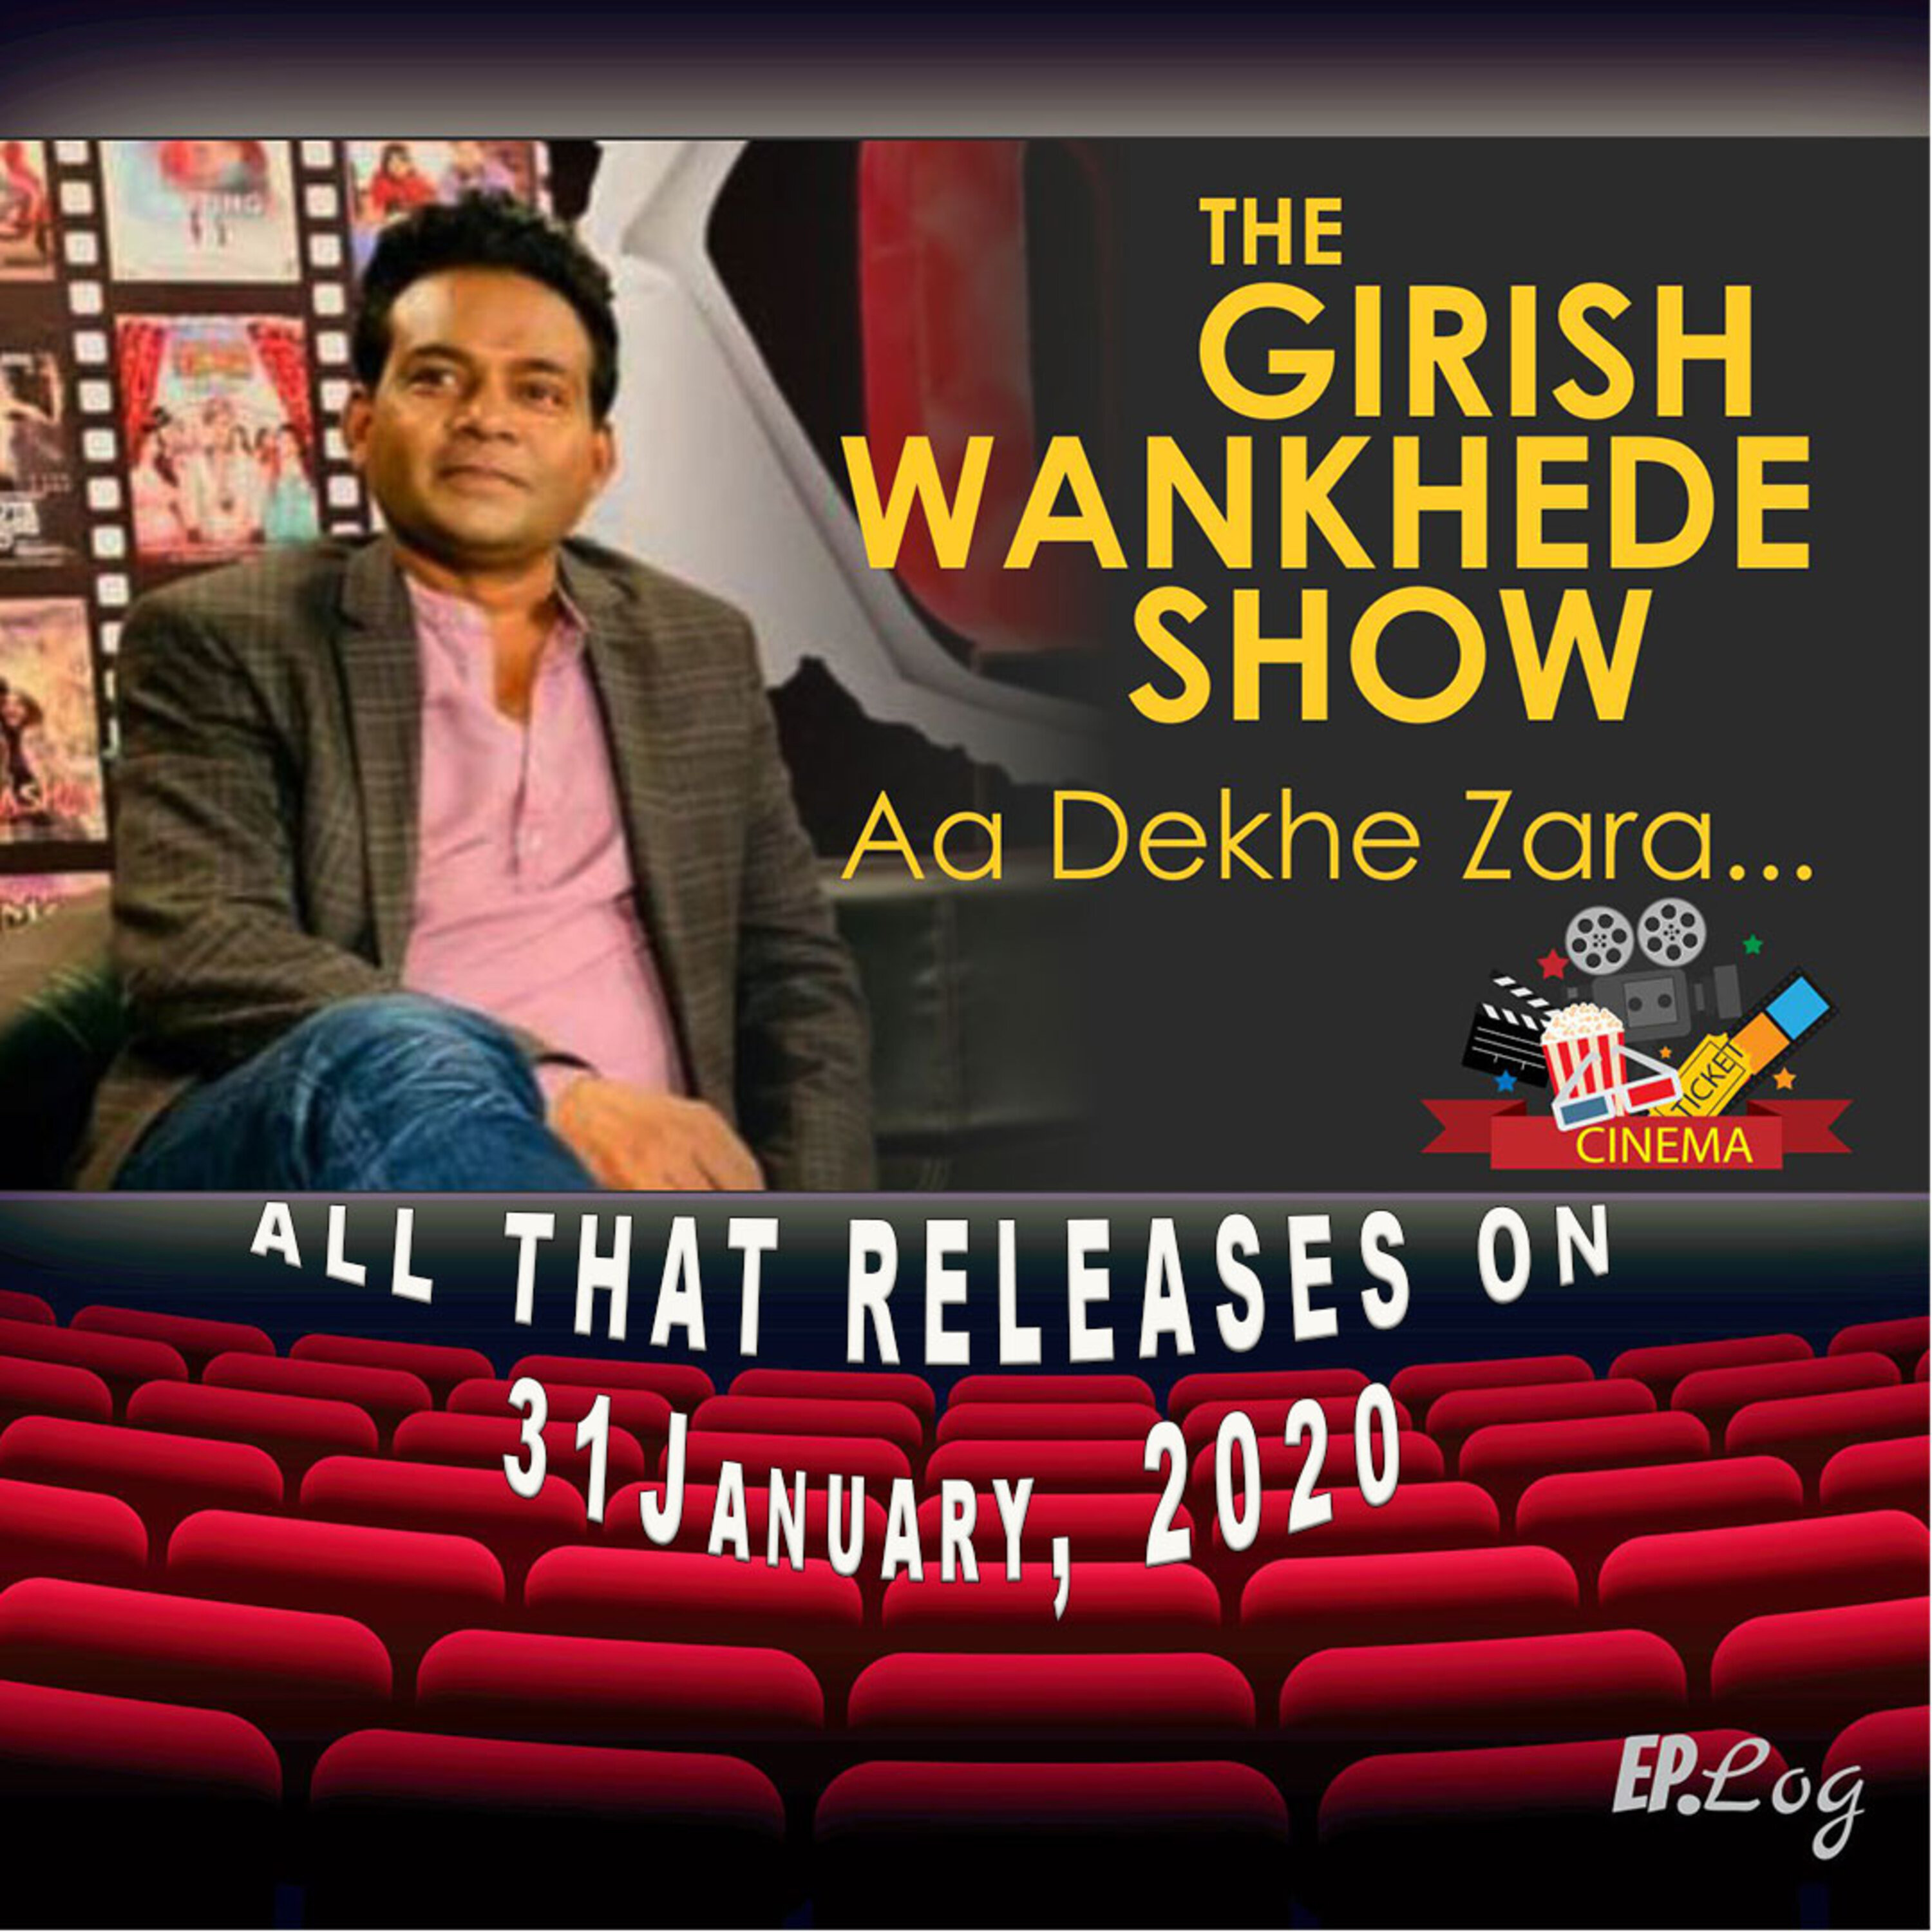 All That Releases on 31st January 2020 & Analysis